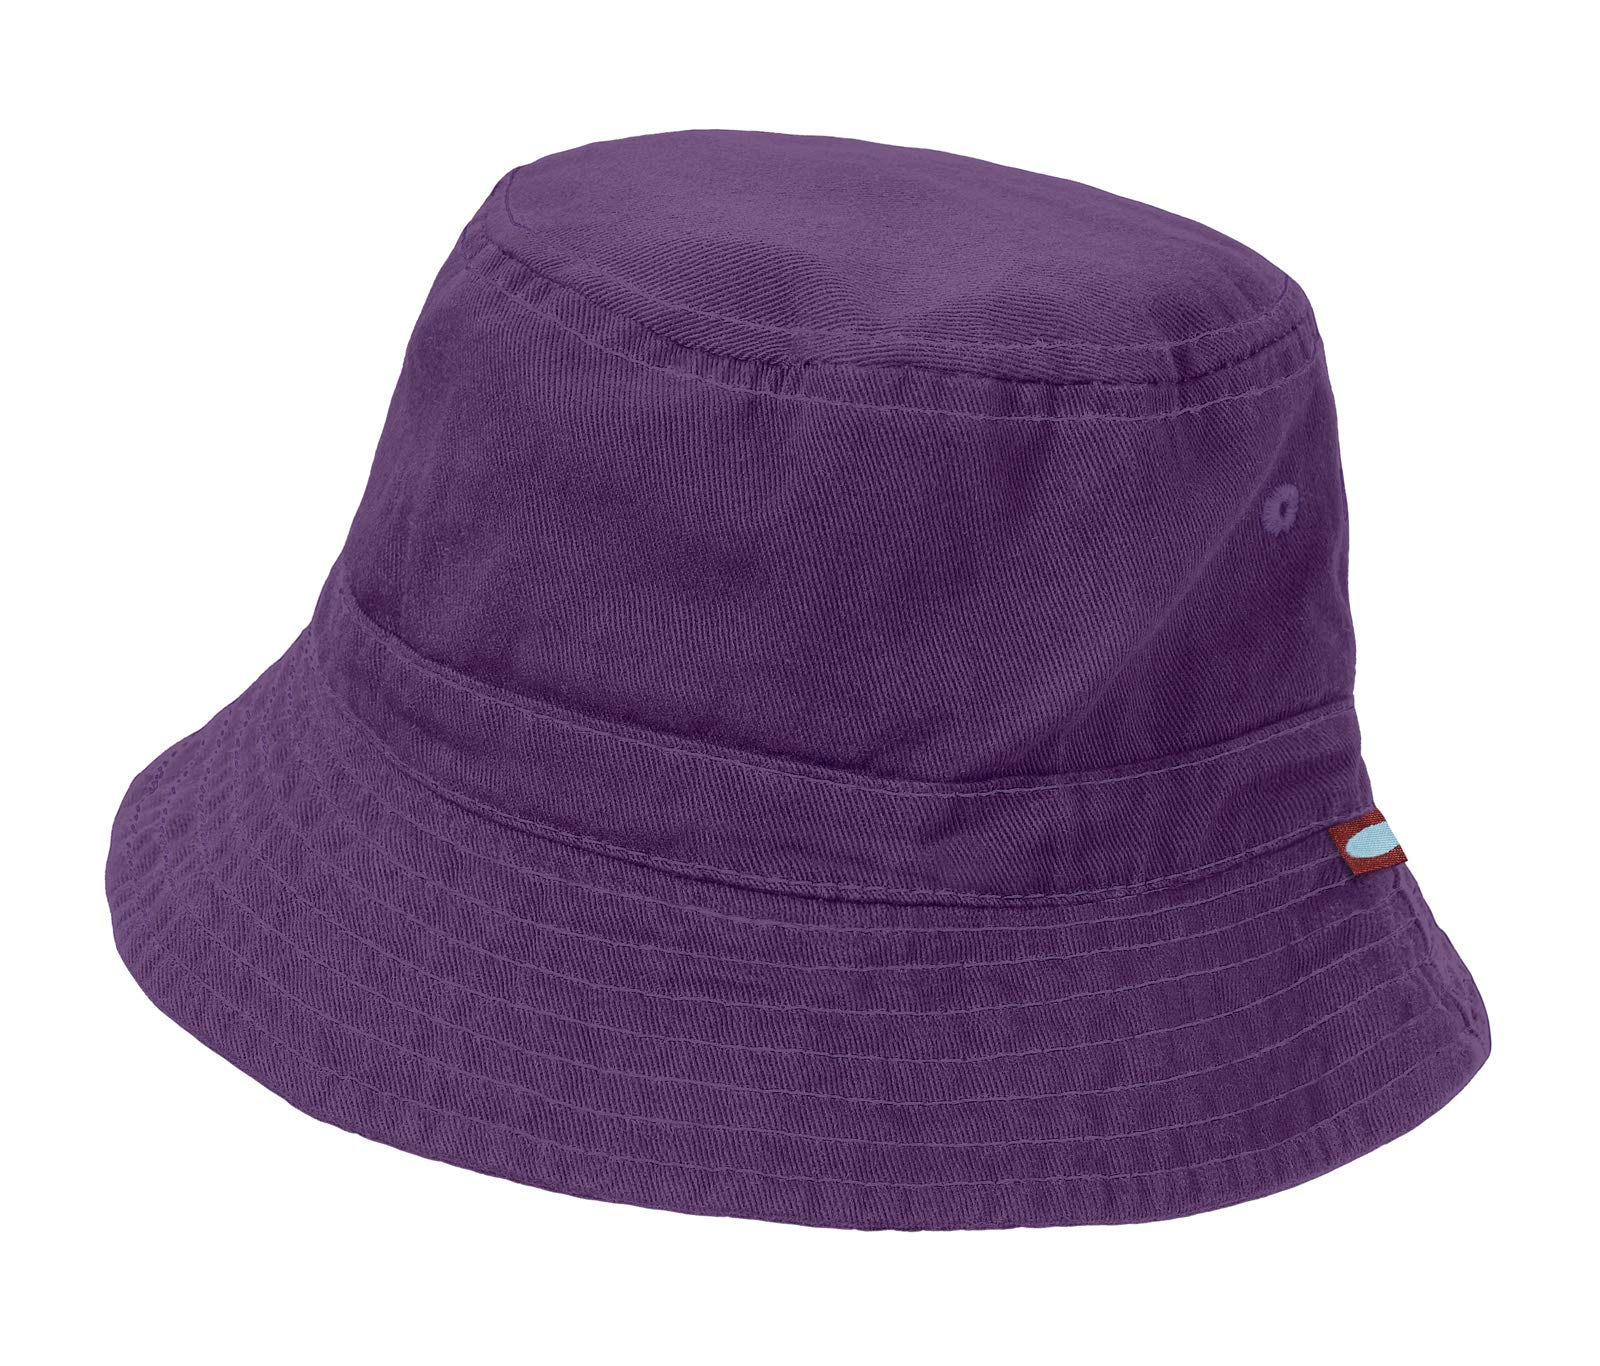 City Threads Little Boys' and Girls' Solid Wharf Hat Bucket Hat for Sun Protection SPF Beach Summer - Purple - XL(4-6)